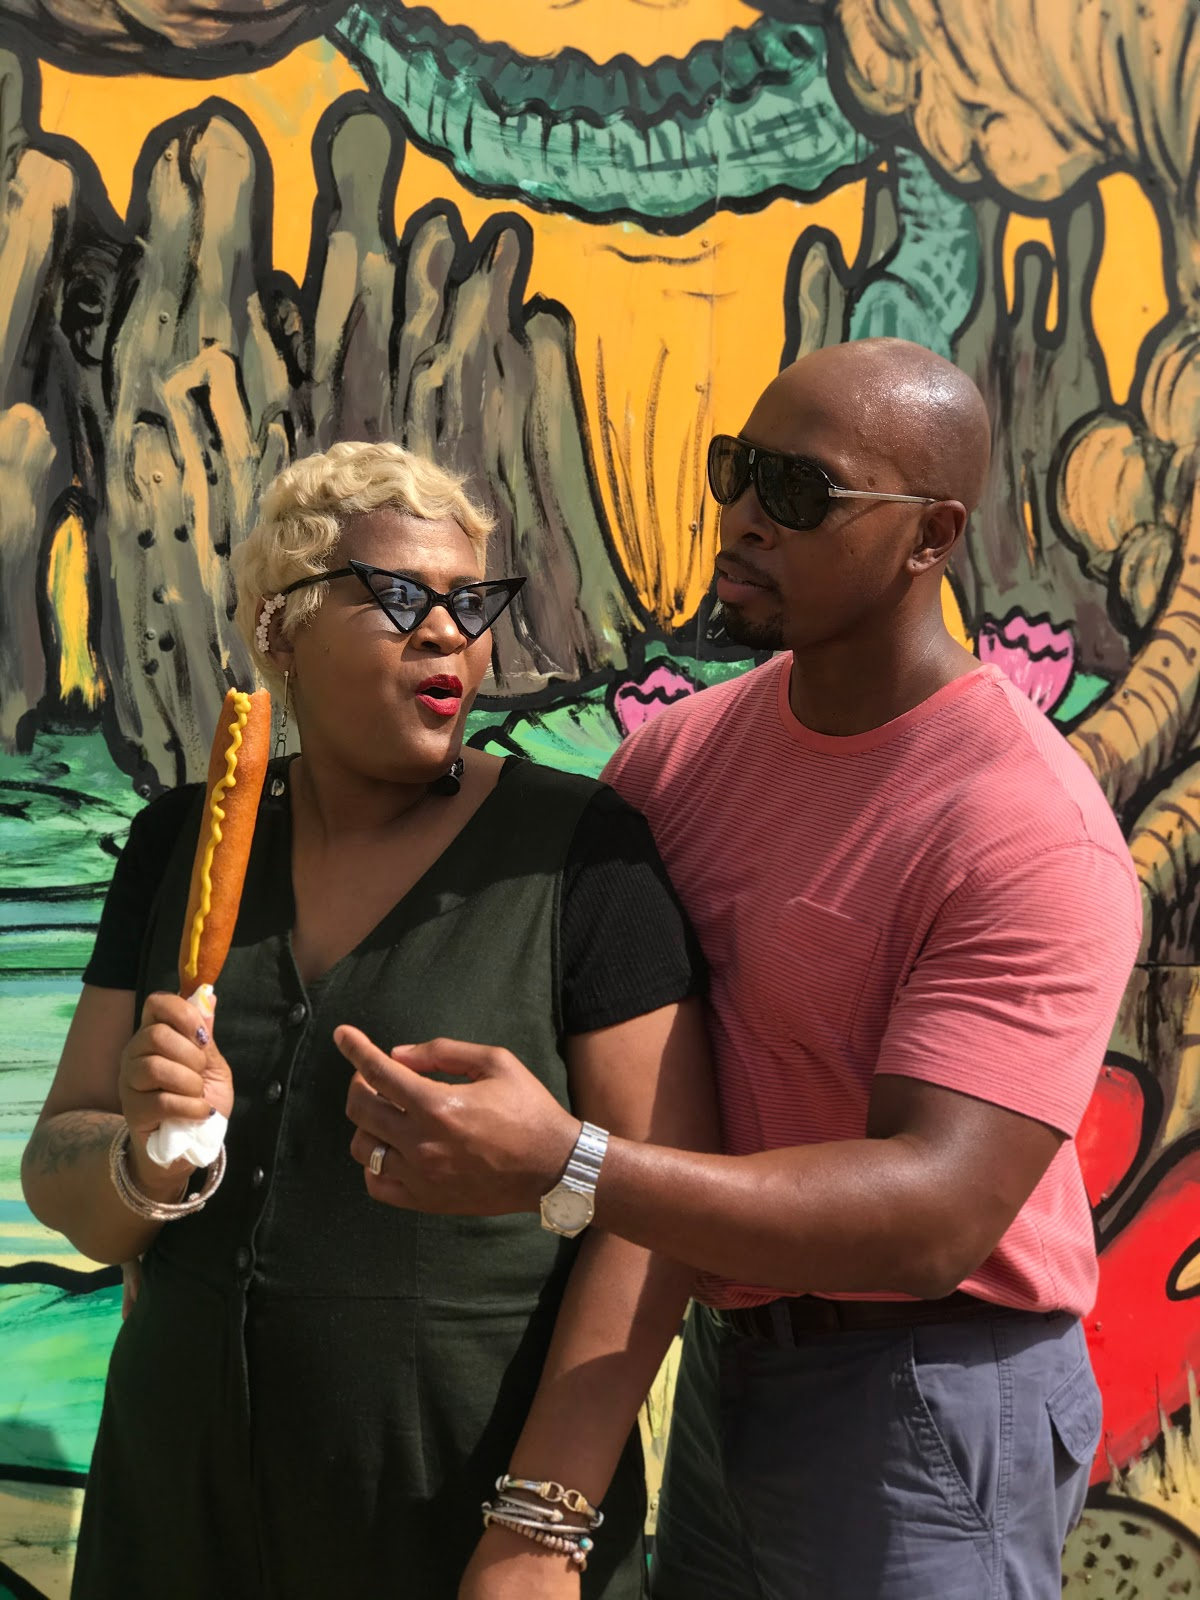 Image: Tangie and her husband Richard Bell having fun in the city eating junk food and capping off the summer